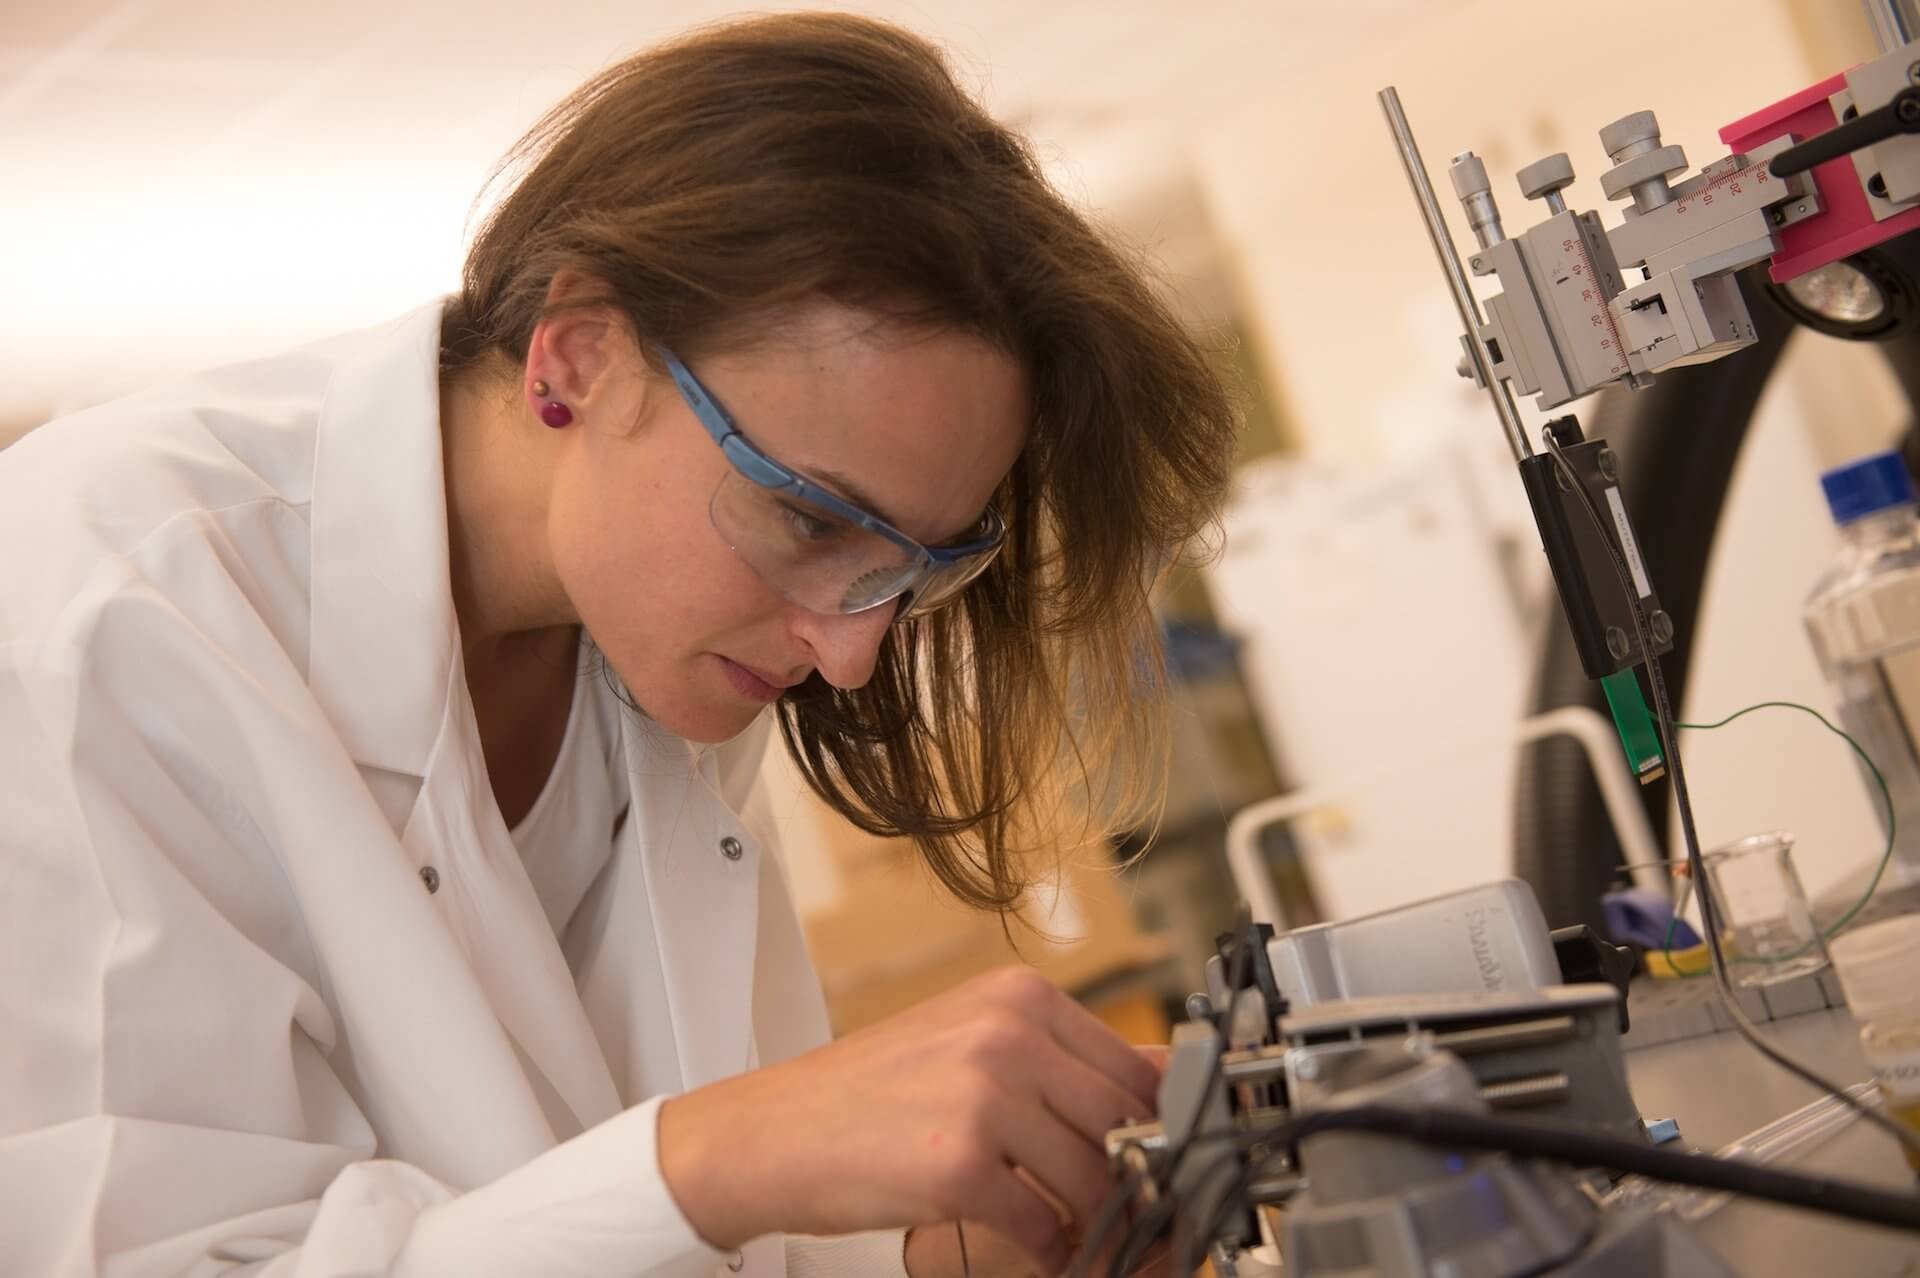 Flavia Vitale, a postdoctoral researcher at Rice, prepares carbon nanotube fibers for testing. (Credit: Jeff Fitlow/Rice University)